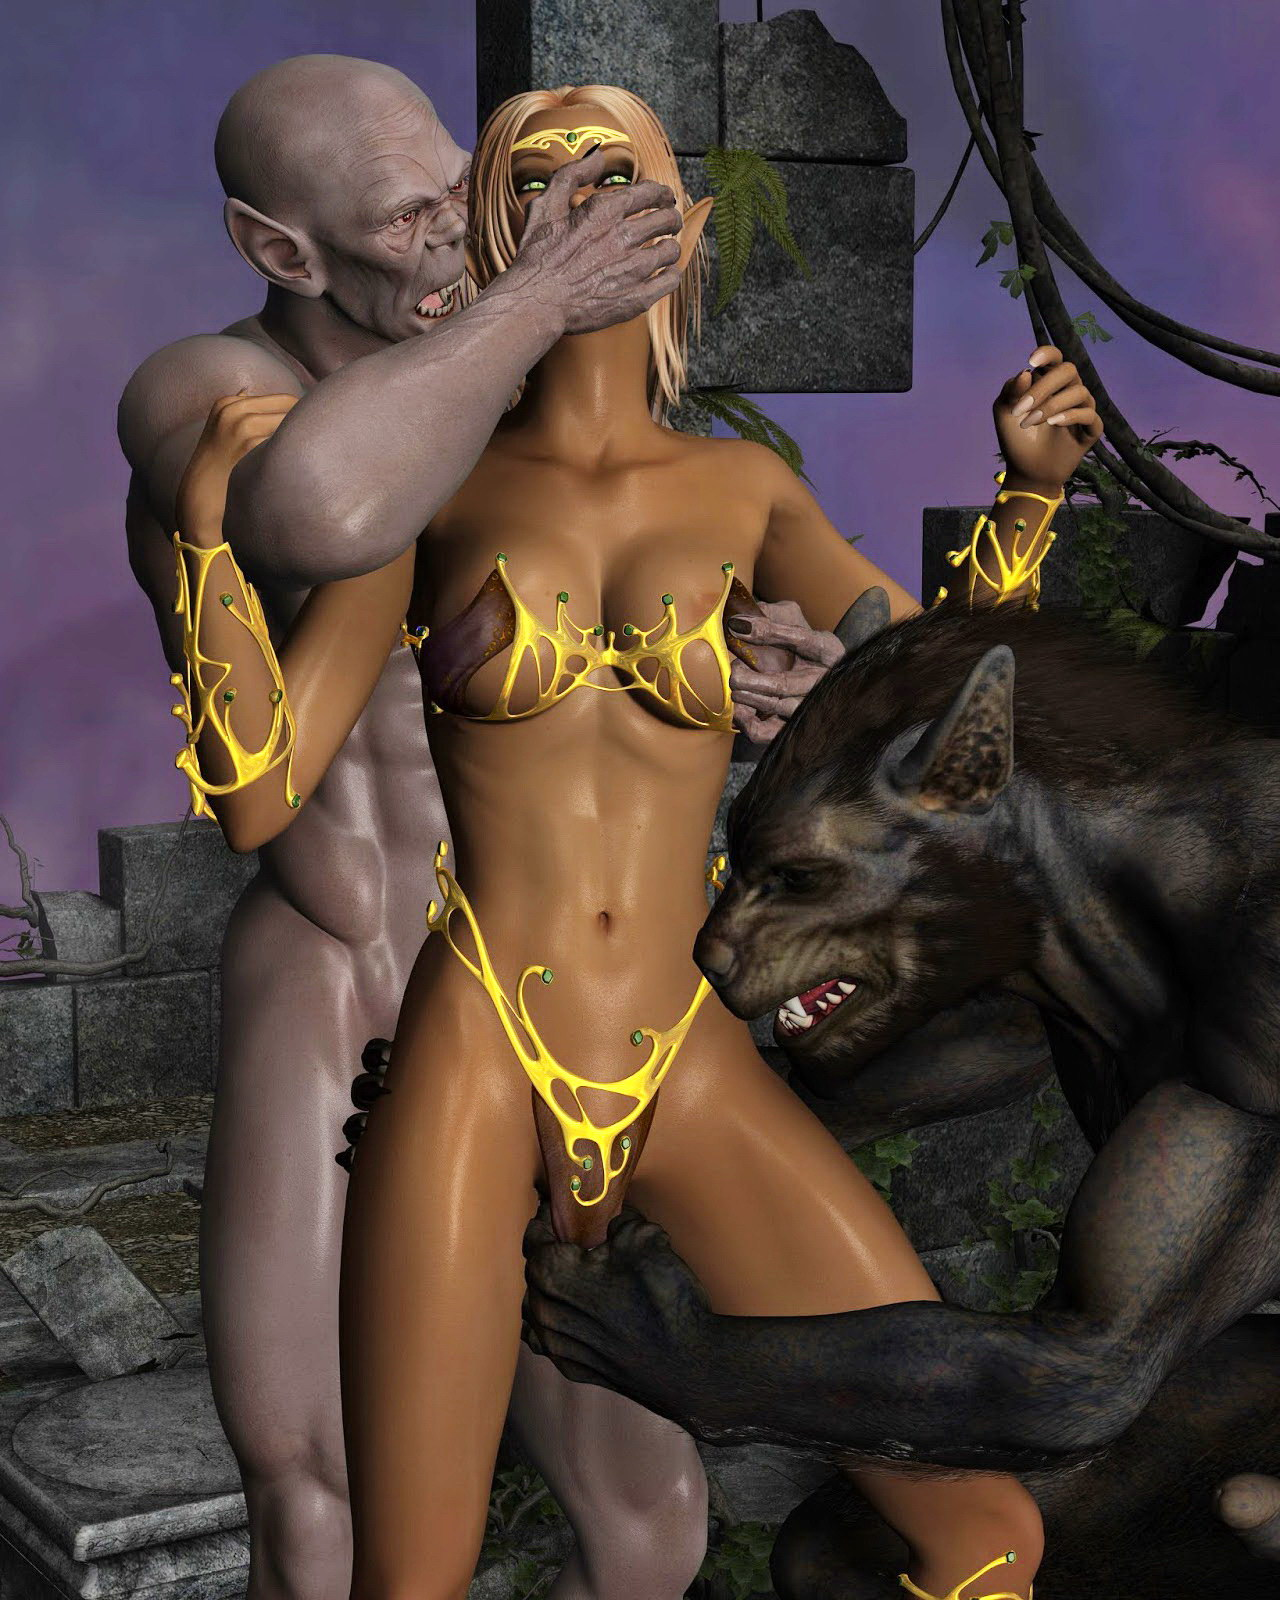 Elf warrior sex pics softcore comic